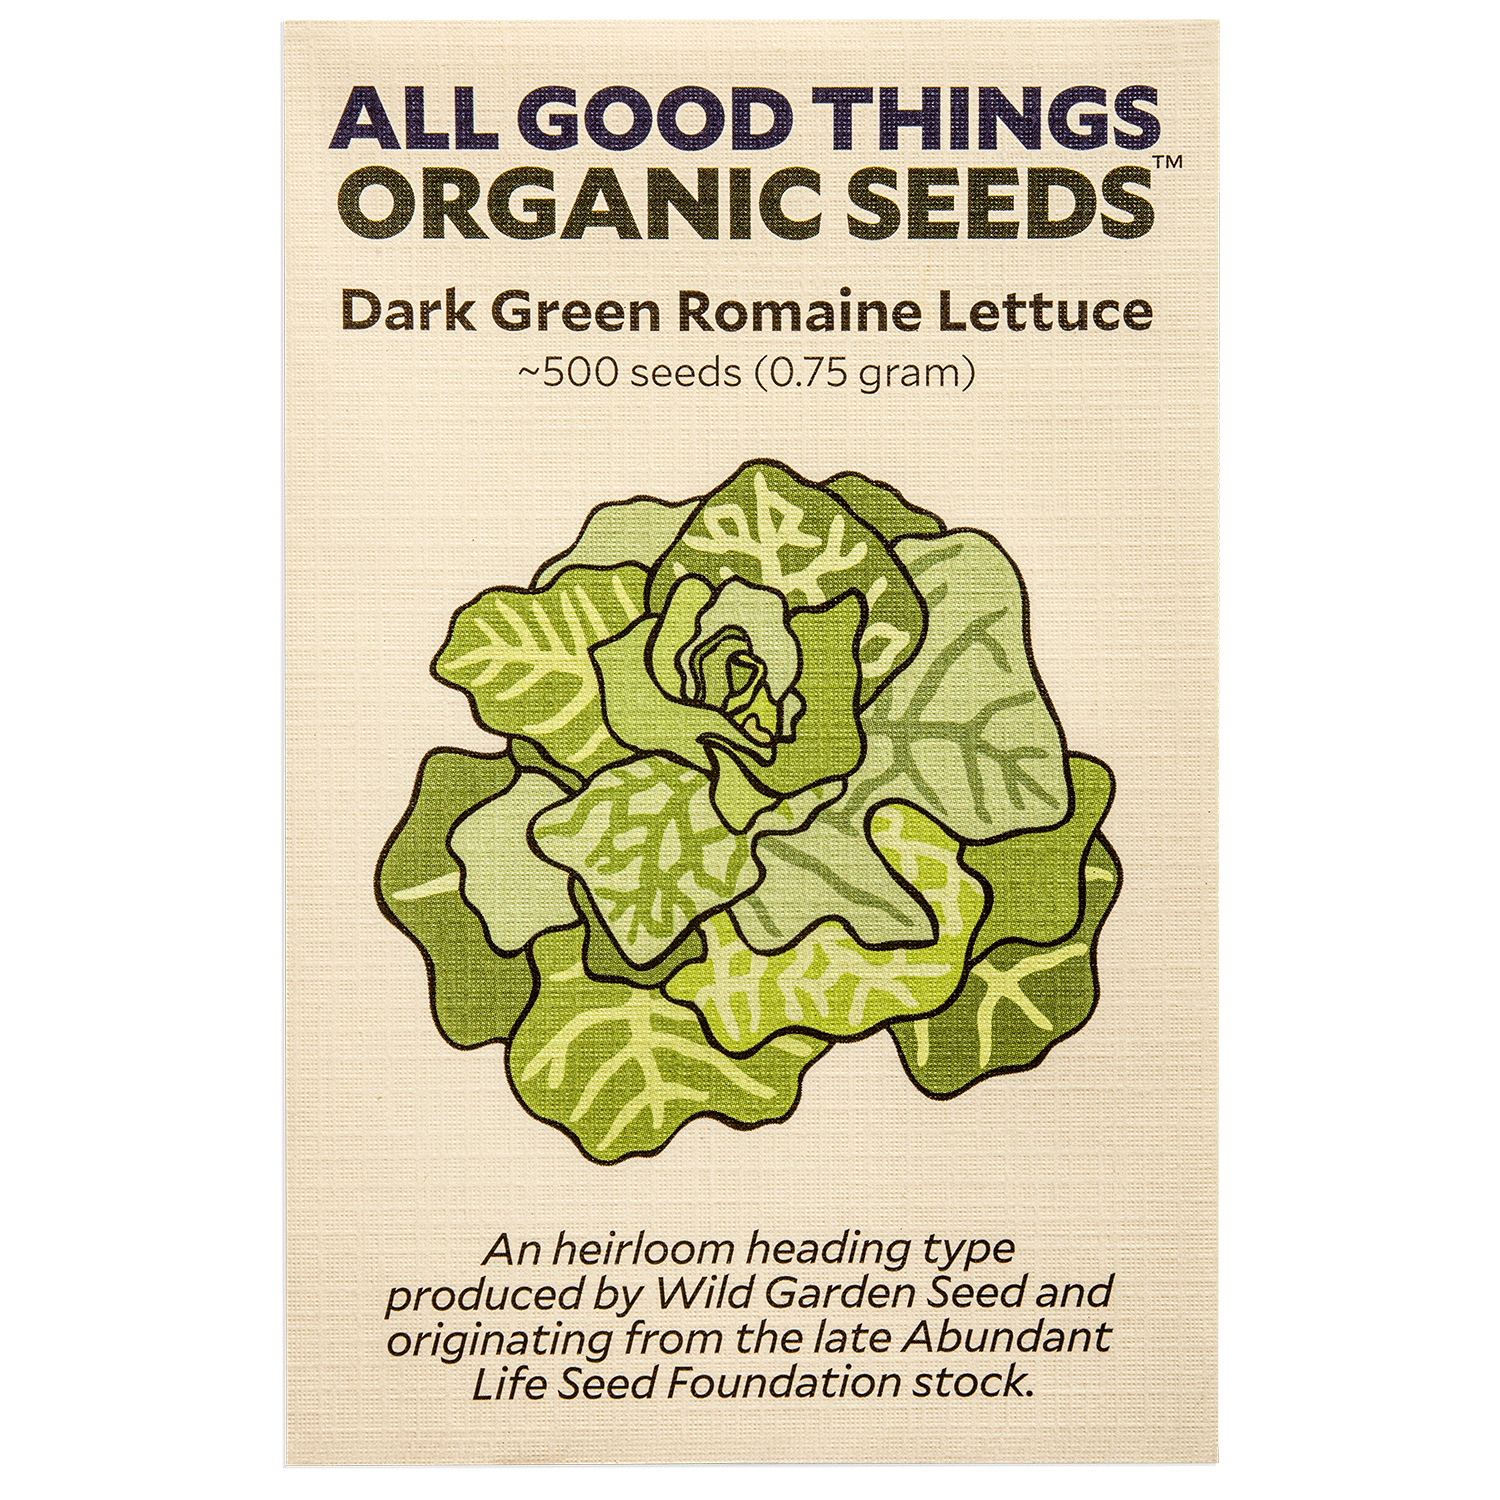 Dark Green Romaine Lettuce